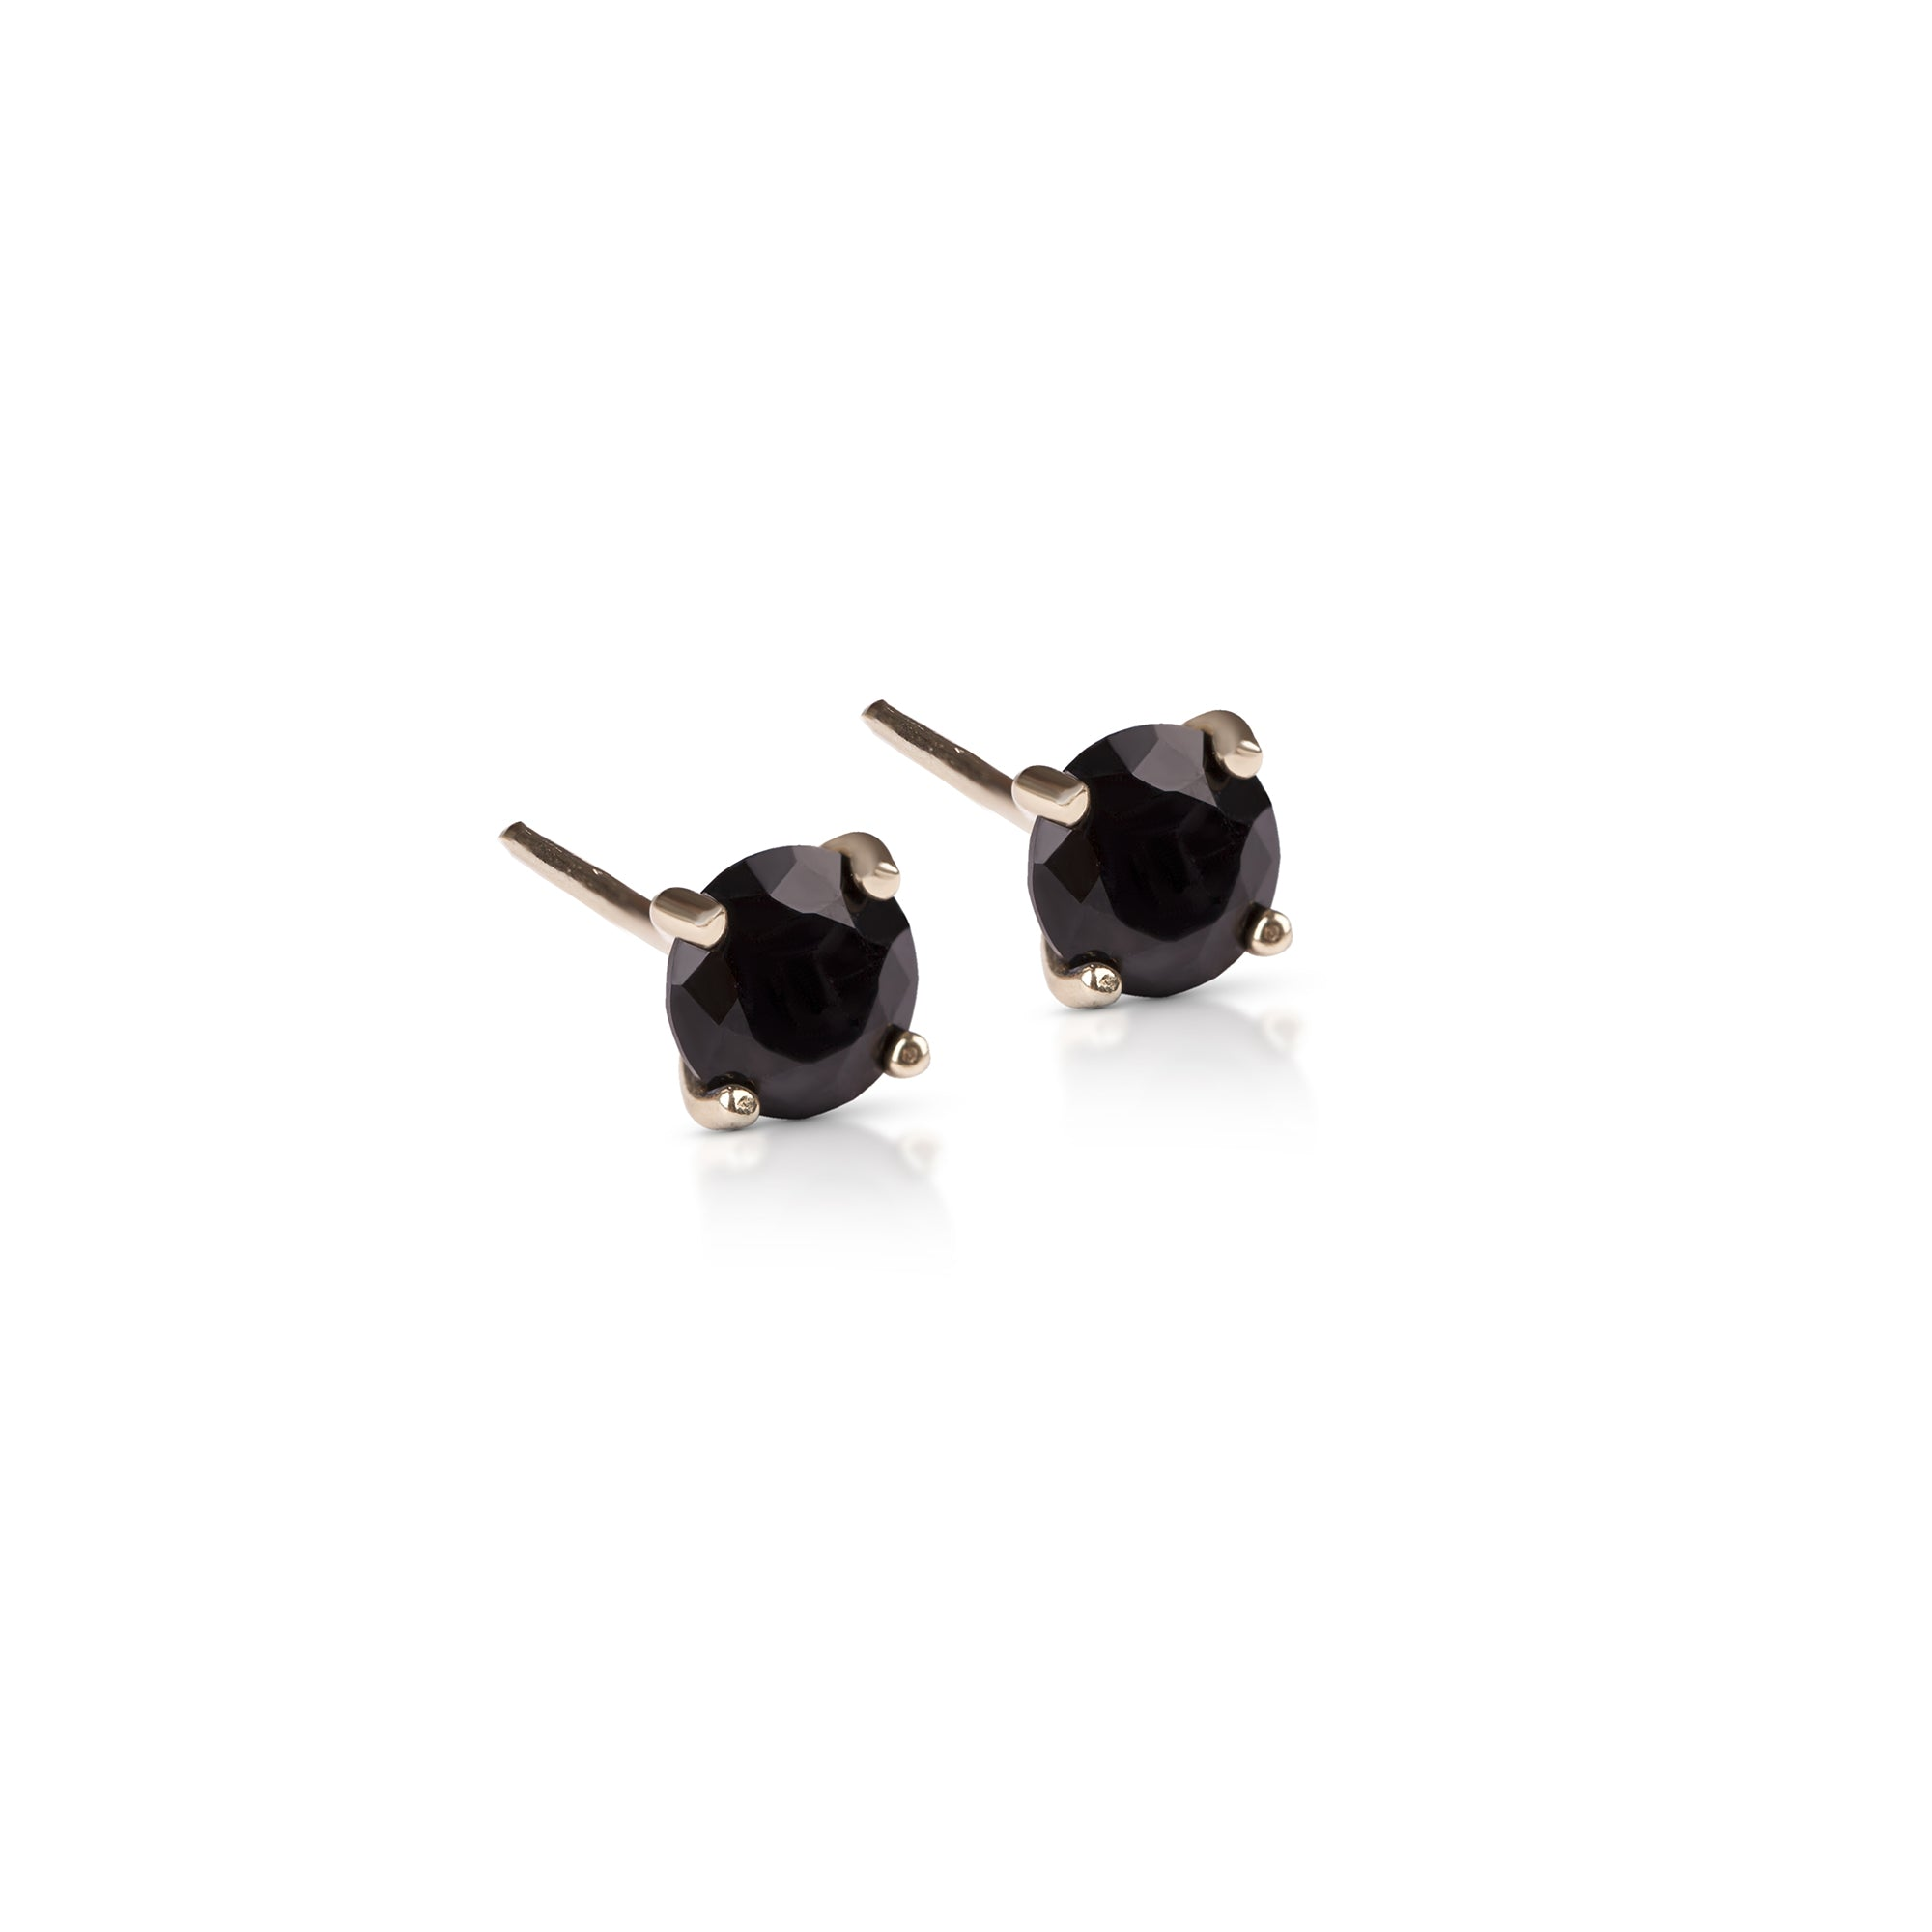 14k gold earring with stone